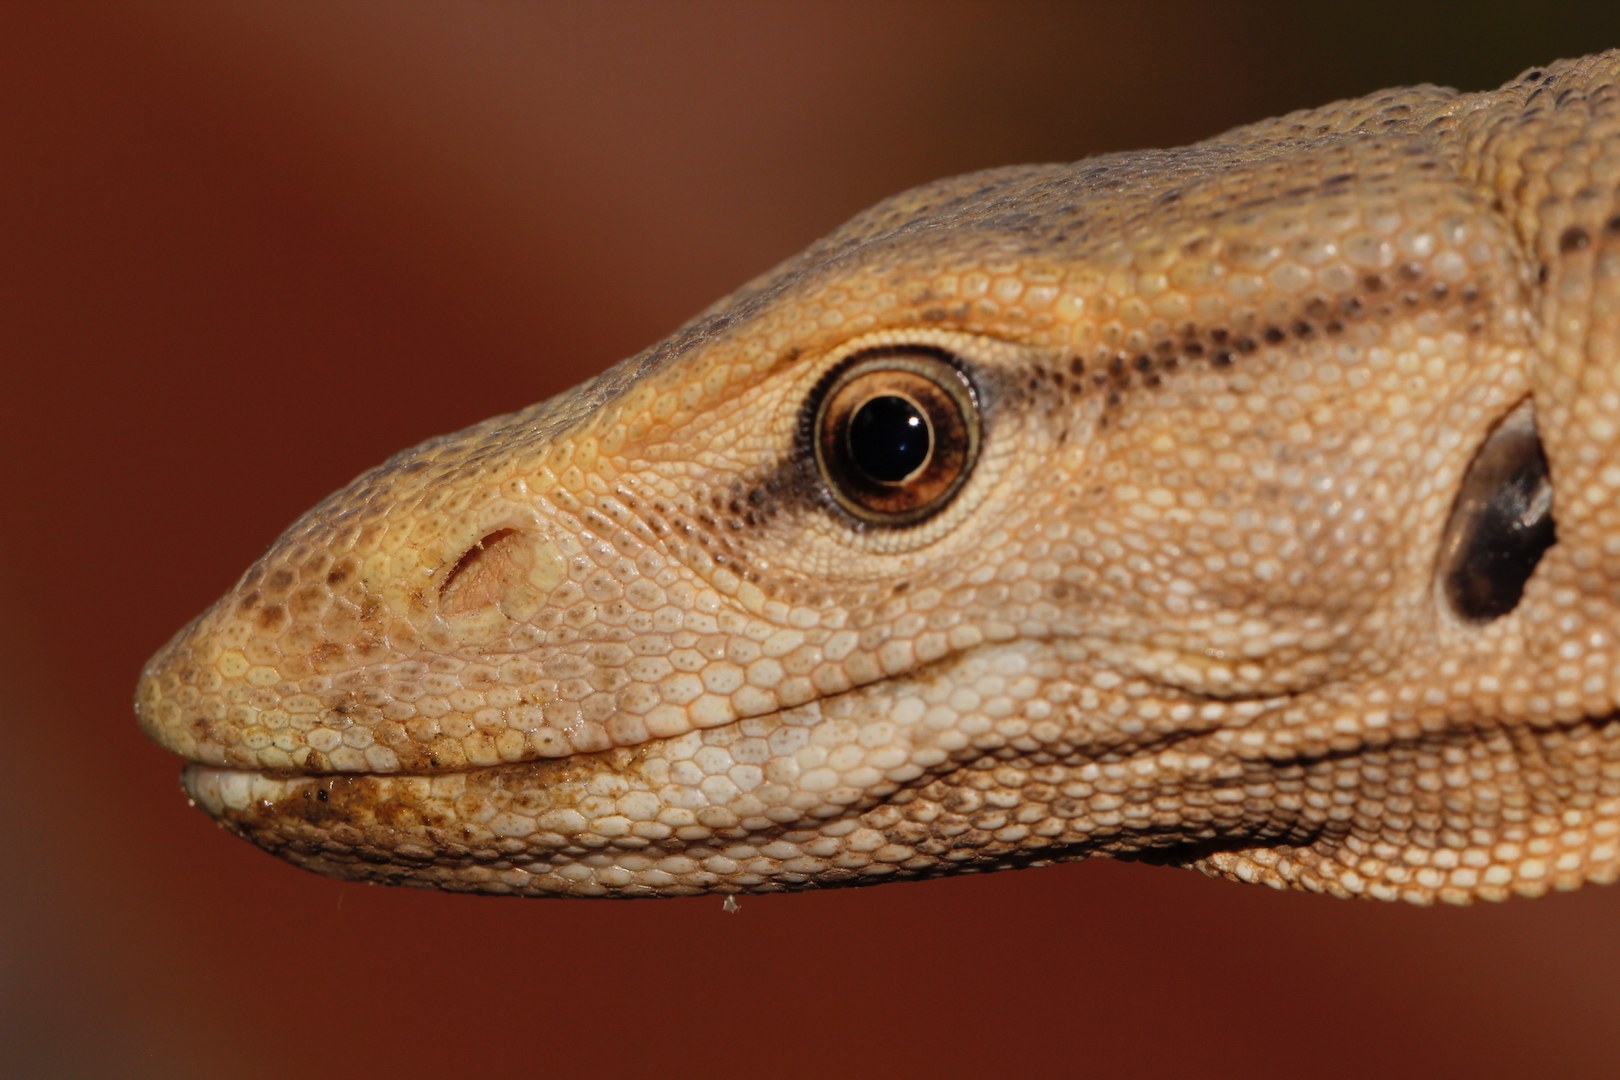 While hunting, monitor lizards rely a lot on sight. They also have relatively good hearing. Photo: Gerry Martin